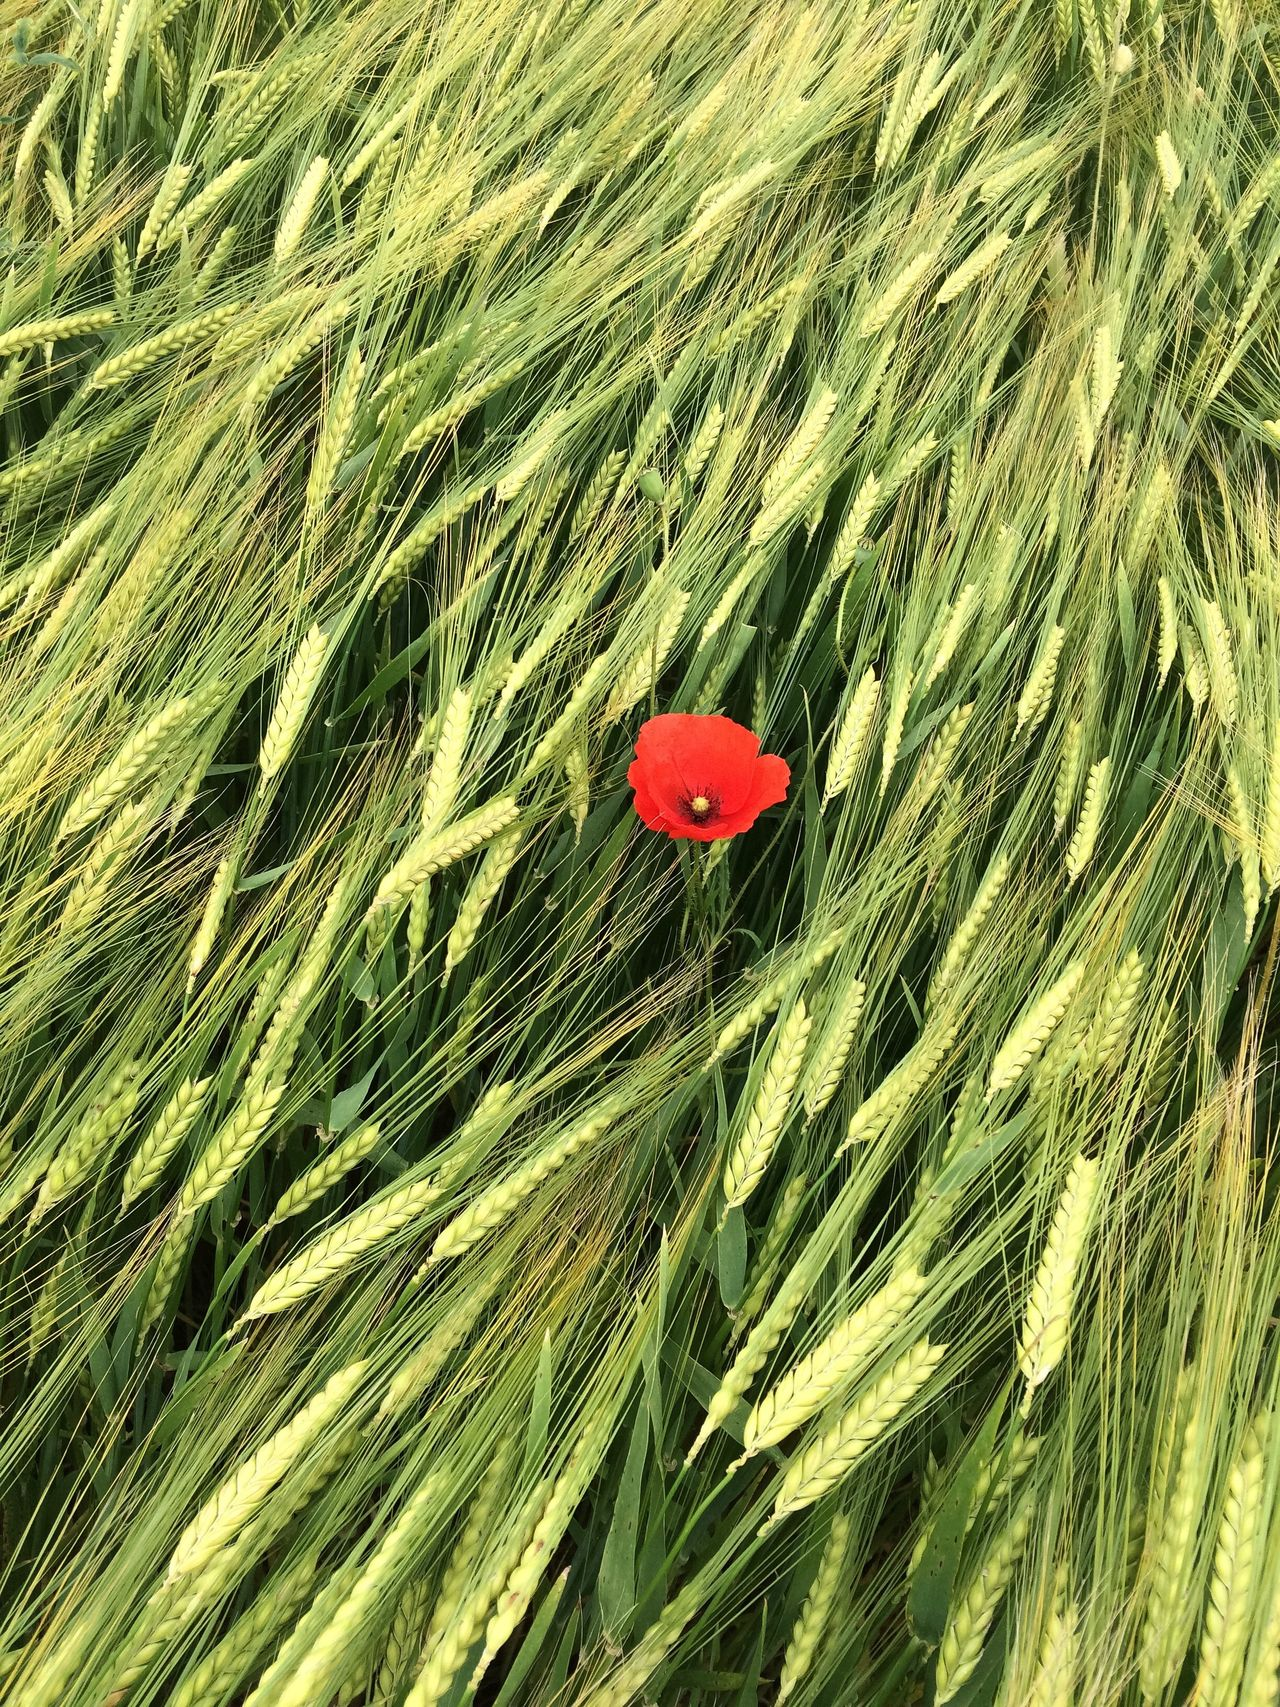 Into the fLux Relaxing Poppies  Wheat Green Field Red Flowers Agriculture Found On The Roll